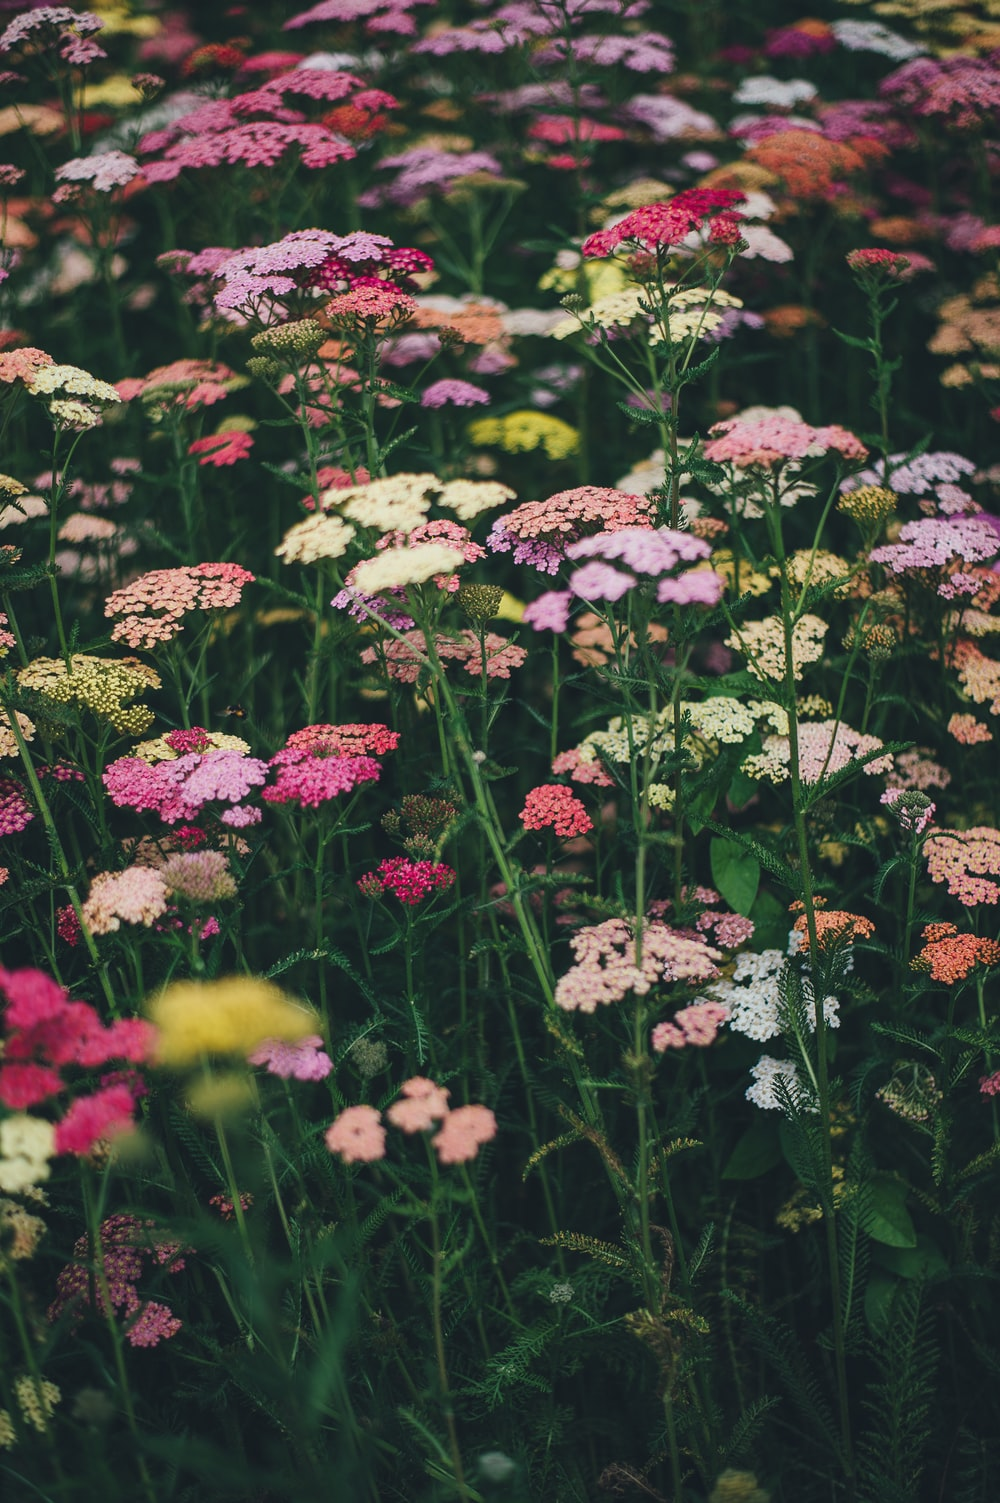 multicolored flowers during daytime